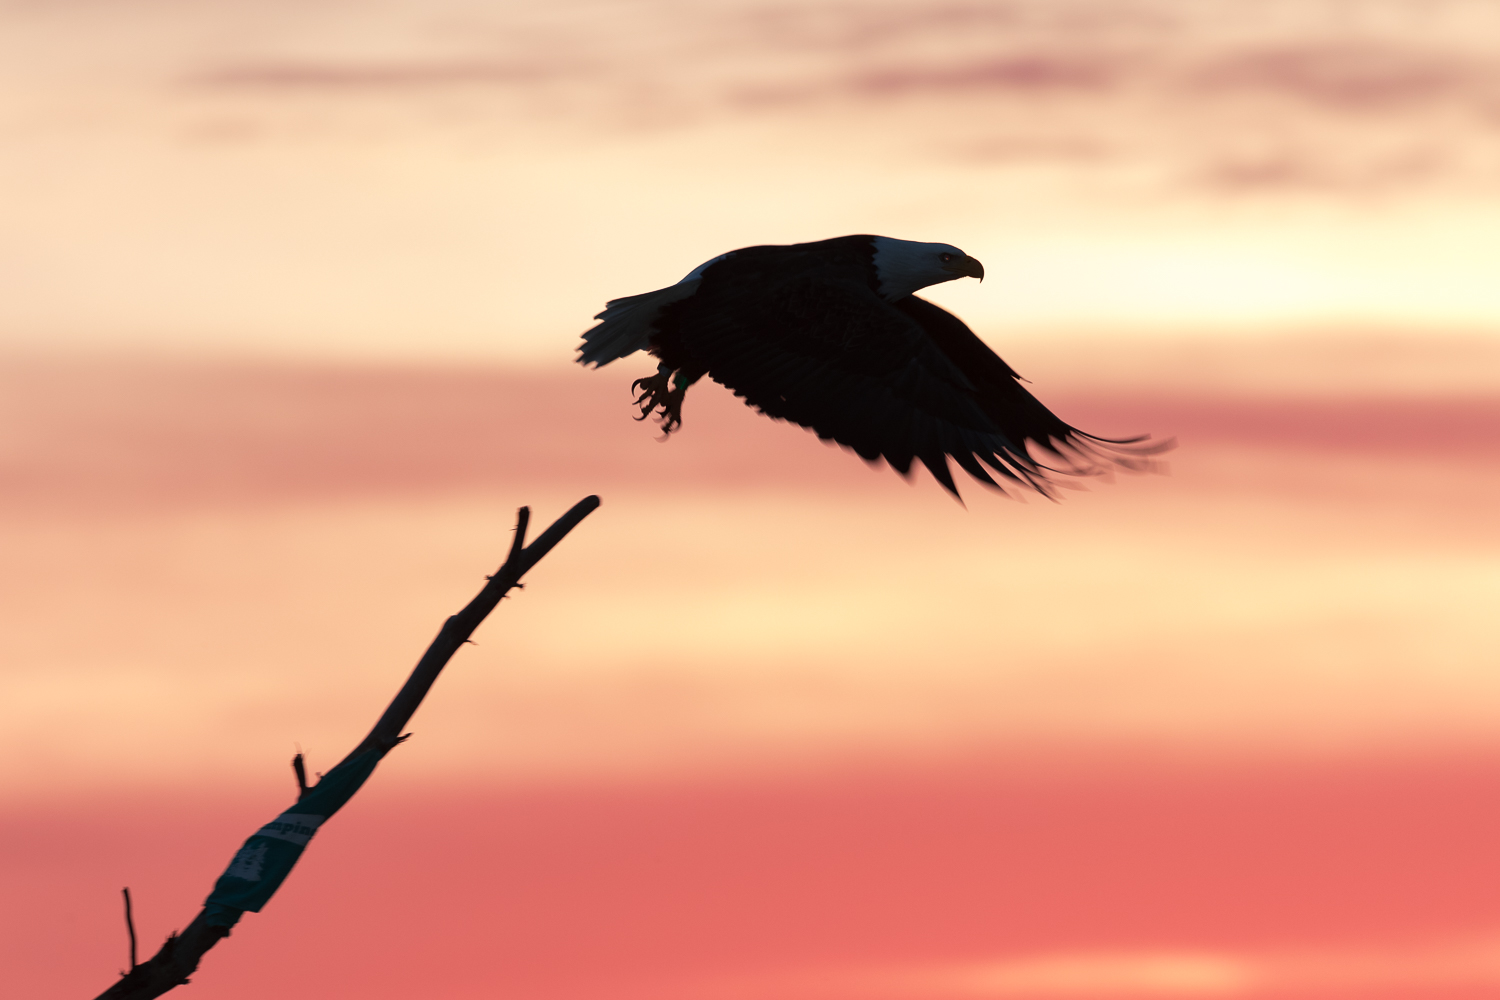 Bald Eagle taking flight at sunrise.